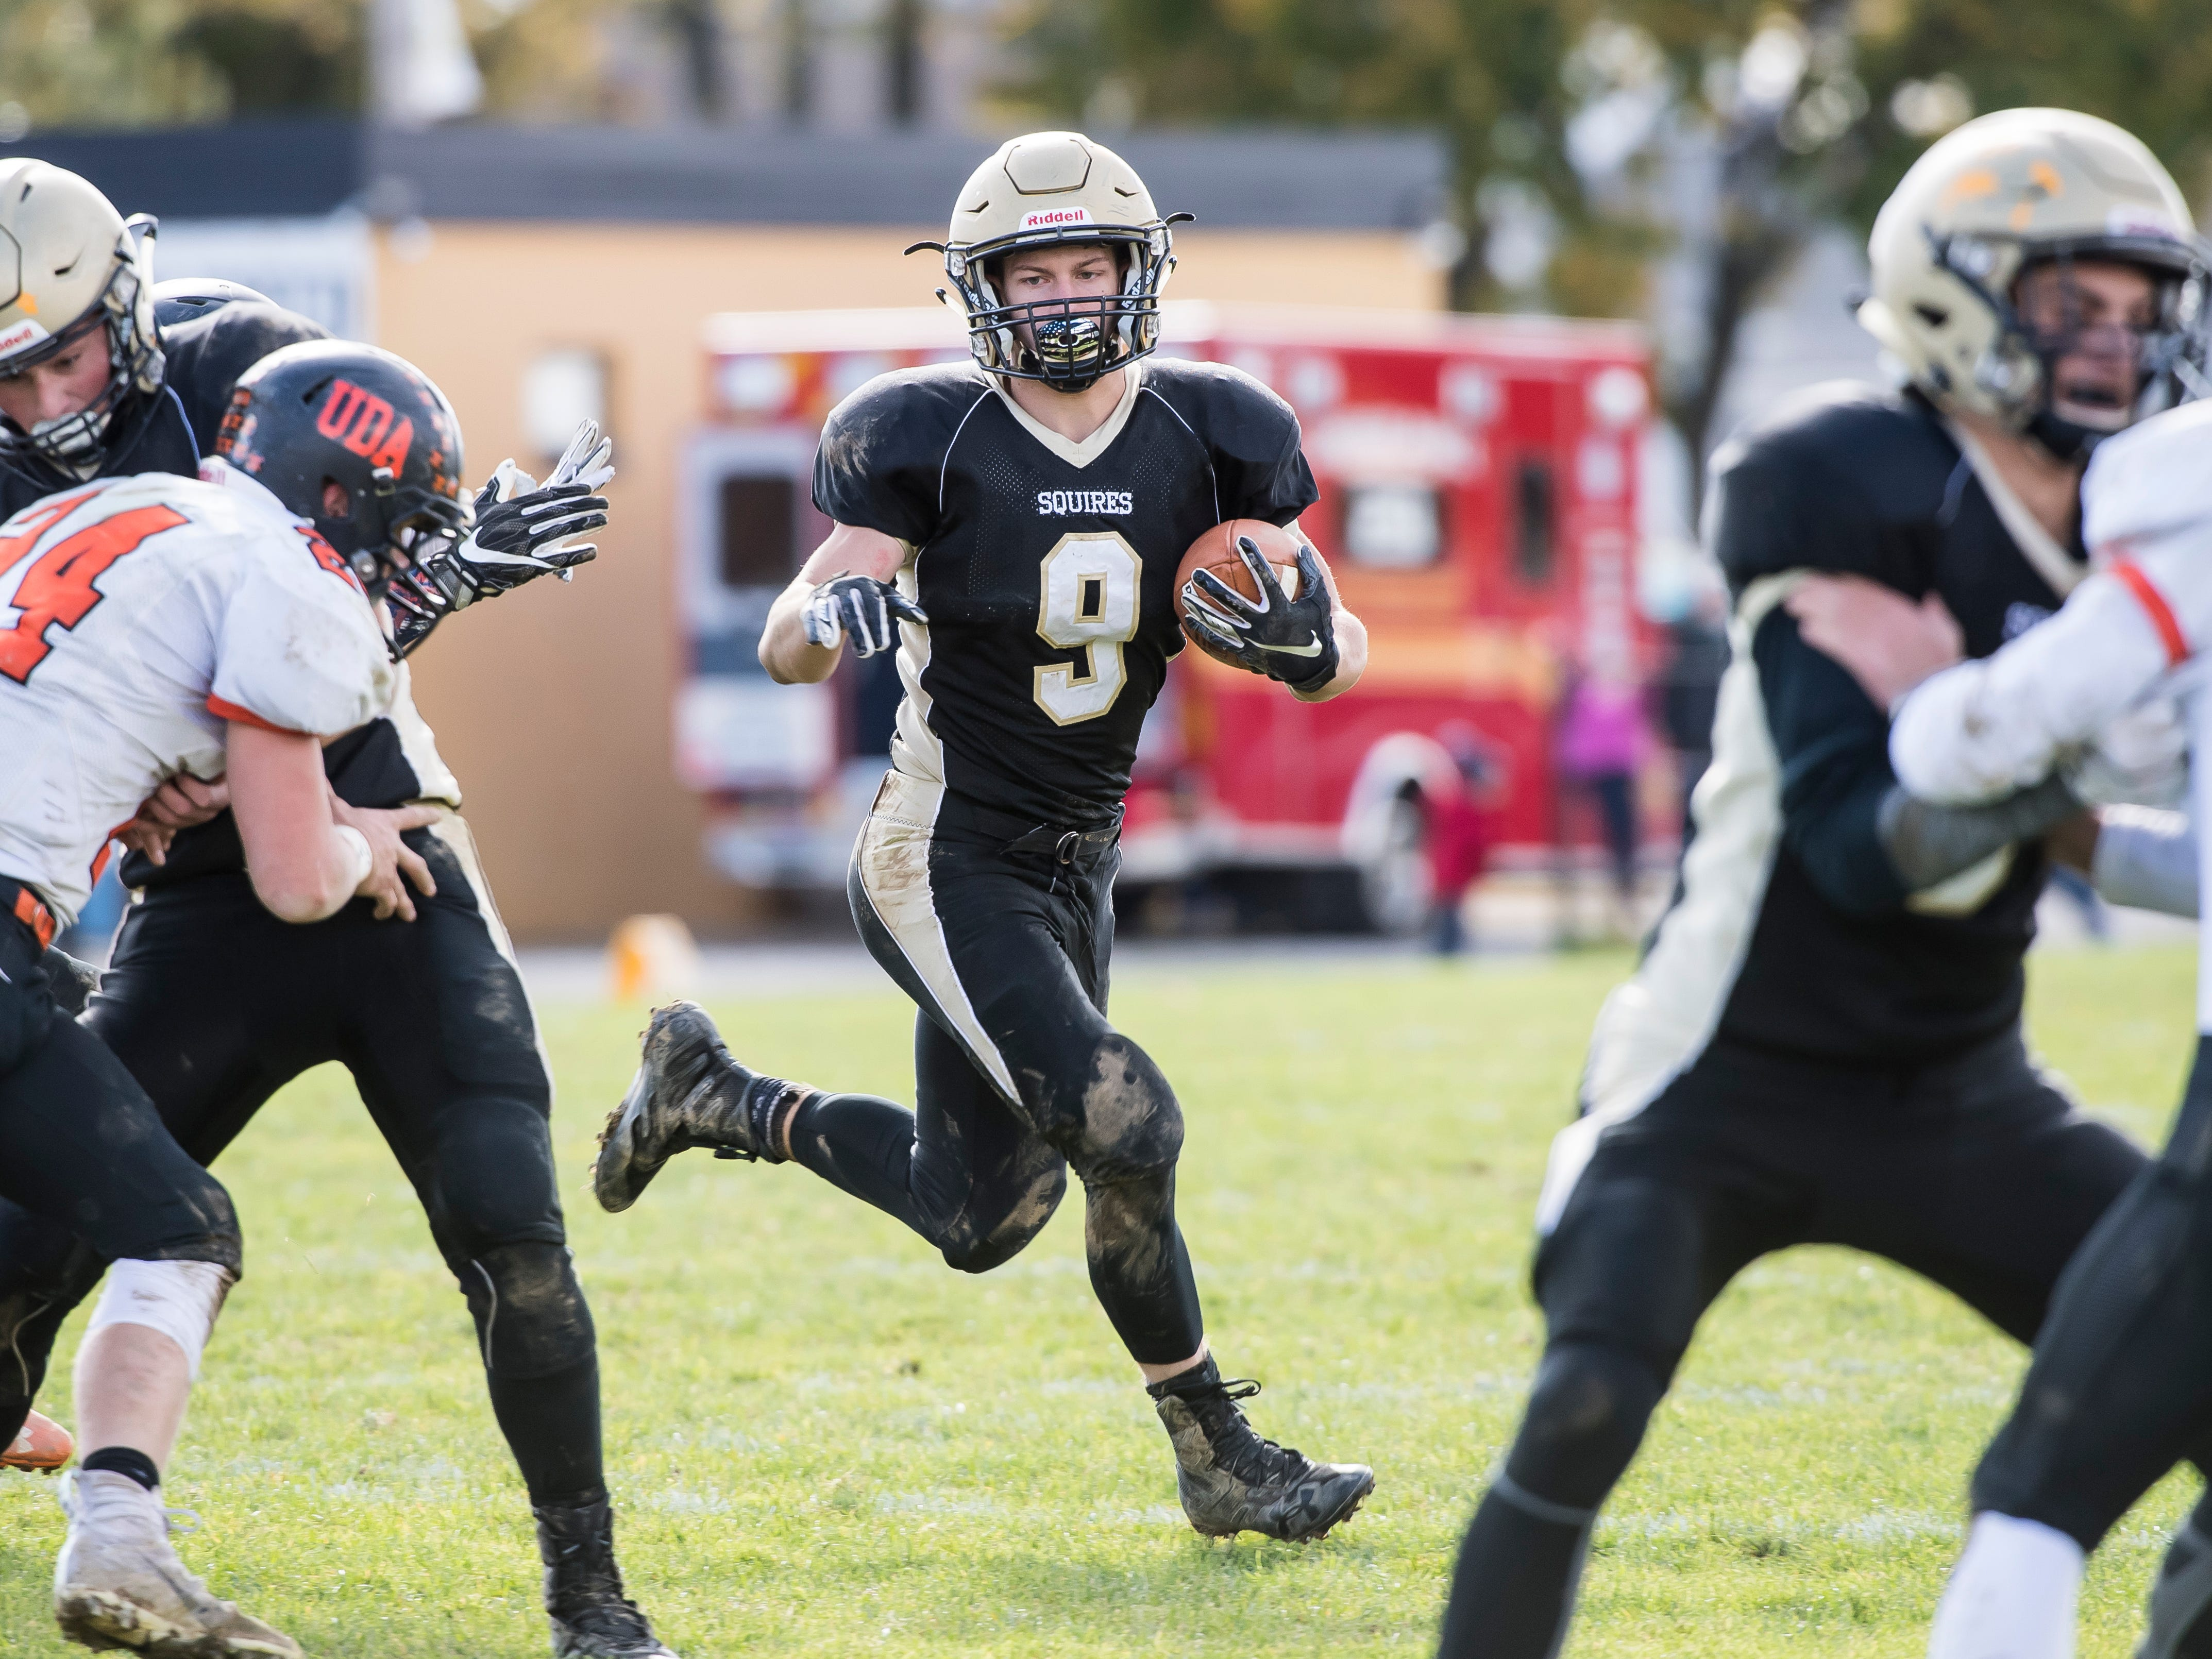 Delone Catholic's Logan Brown carries the ball against Upper Dauphin during a District III Class 2A semifinal game on Saturday, November 3, 2018. The Squires won 48-23.